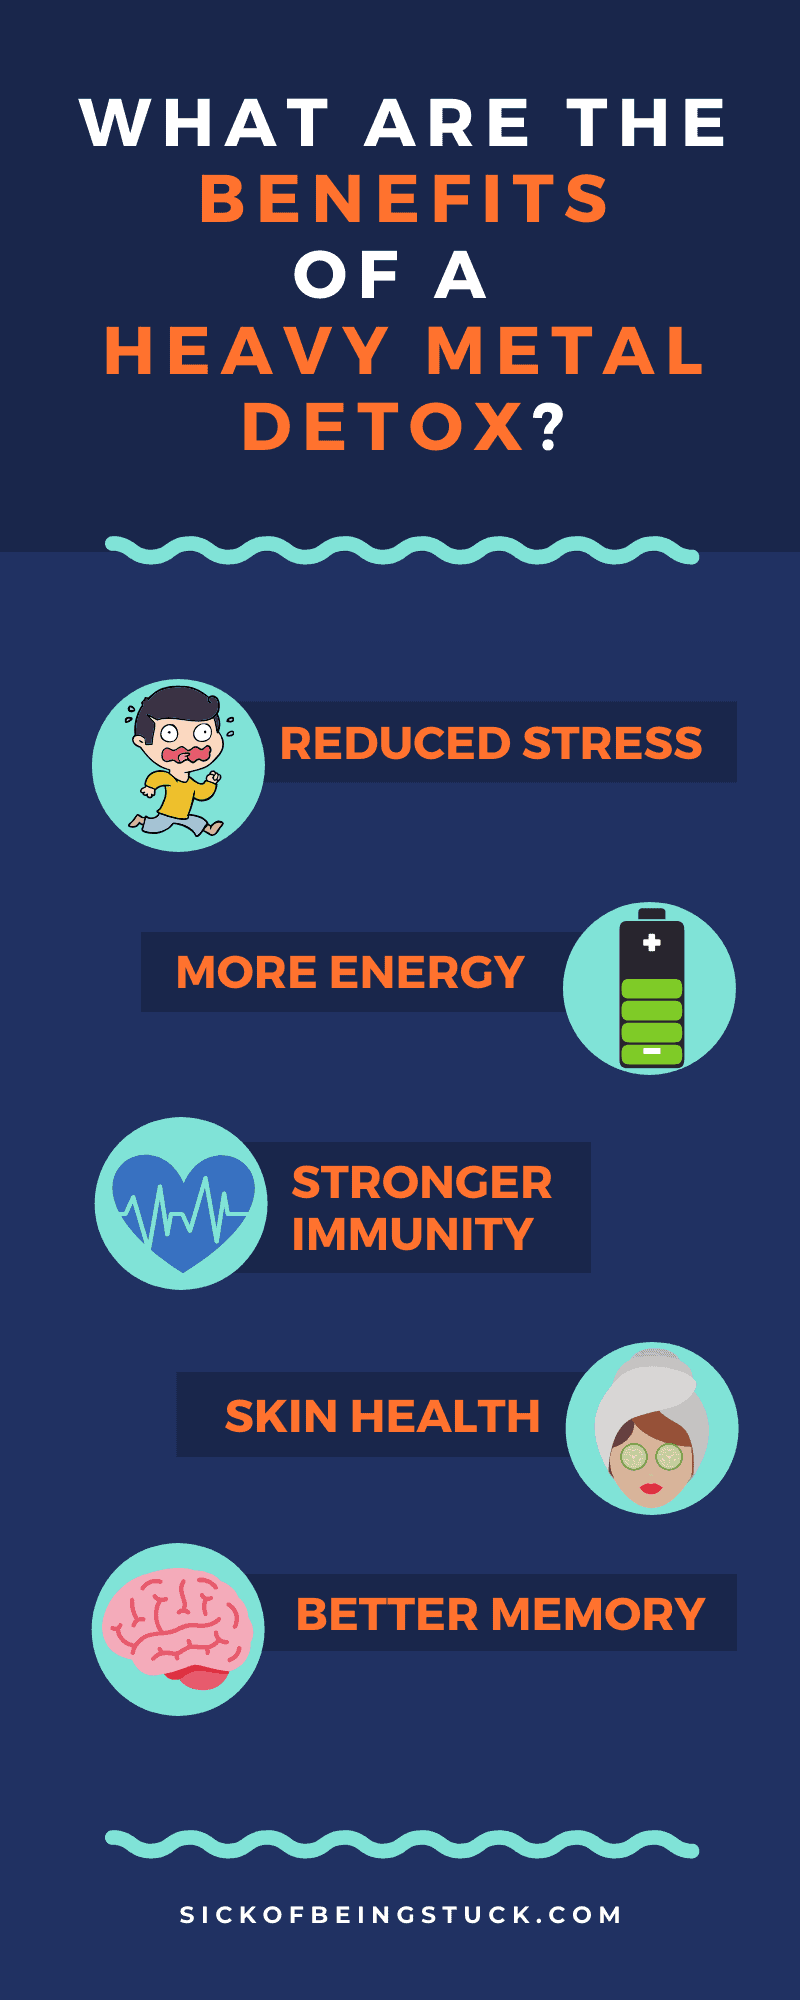 There are many benefits of a heavy metal detox!